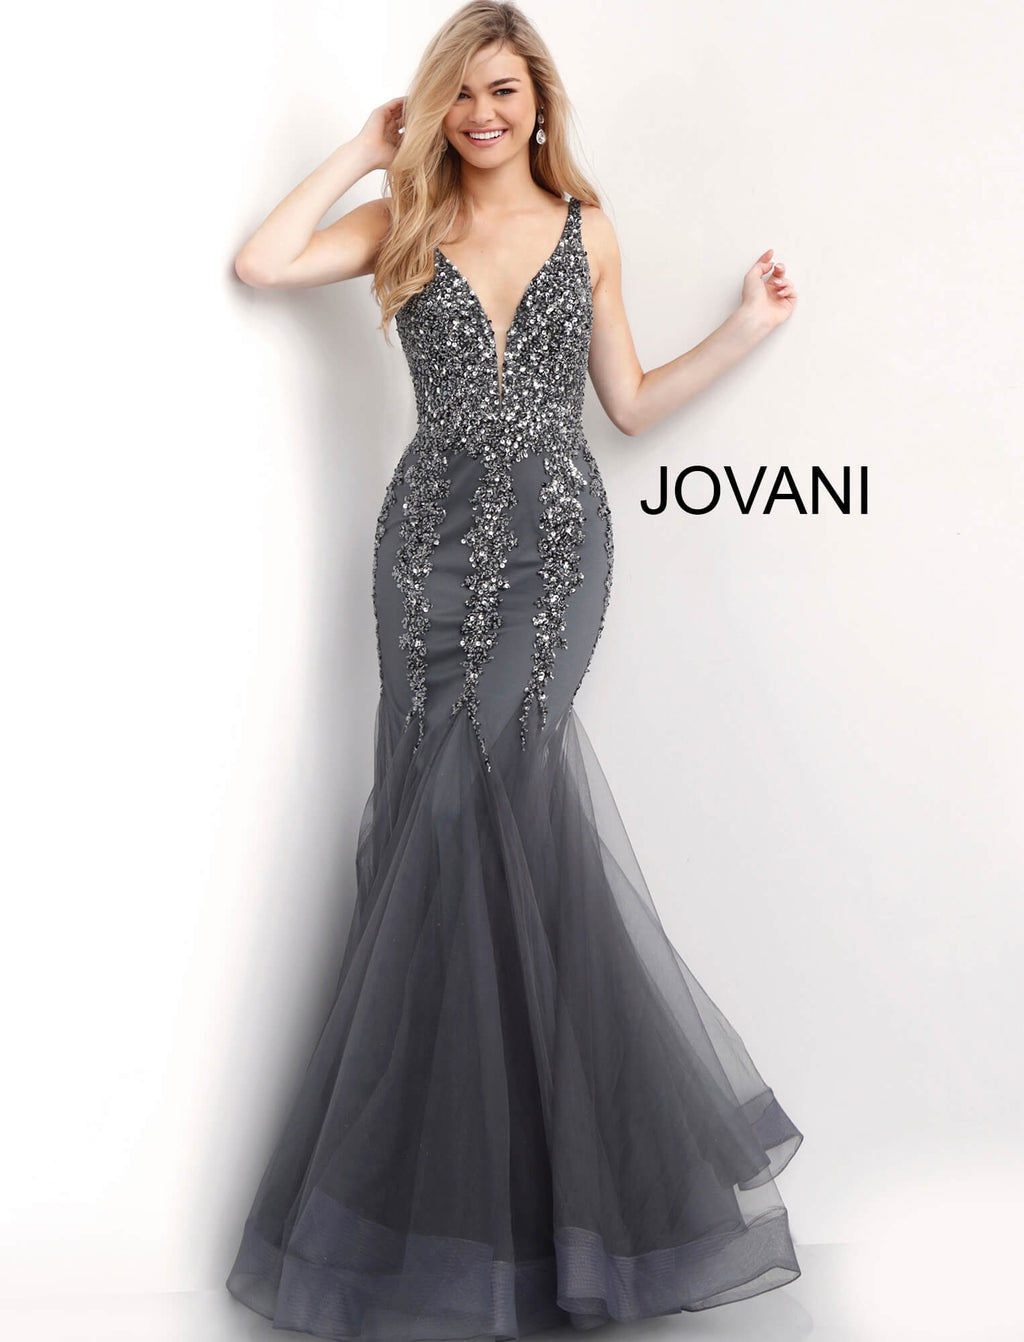 JOVANI 63700 Beaded Mermaid Evening Dress